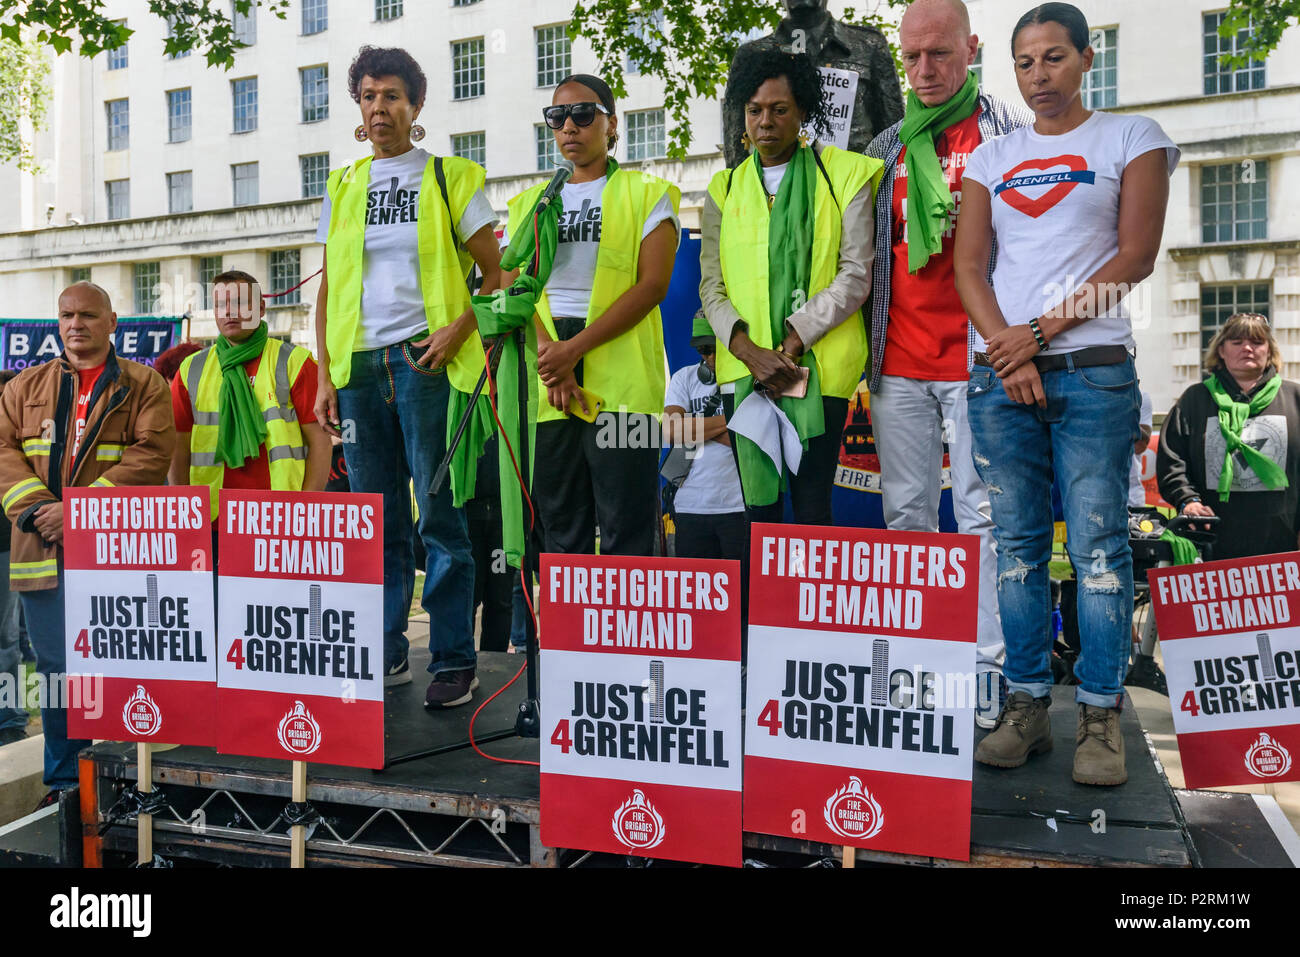 London, UK. 16th June 2018. Moyra Samuels, Tasha Brades and Yvette Williams from Justice4Grenfell and Matt Wrack and Lucy Masoud of the FBU stand in a 72 second silence at Downing St remembering the 72 killed in the Grenfell fire a year ago at a protest organised by Justice4Grenfell and the FBU (Fire Brigades Union.) After some speeches they marched to the Home Office for a brief protest before returning to Downing St for more speeches. Speakers complained of the many promises made by Theresa May which have been broken, despite her promise all survivors would be rehoused in 3 weeks, a year lat - Stock Image